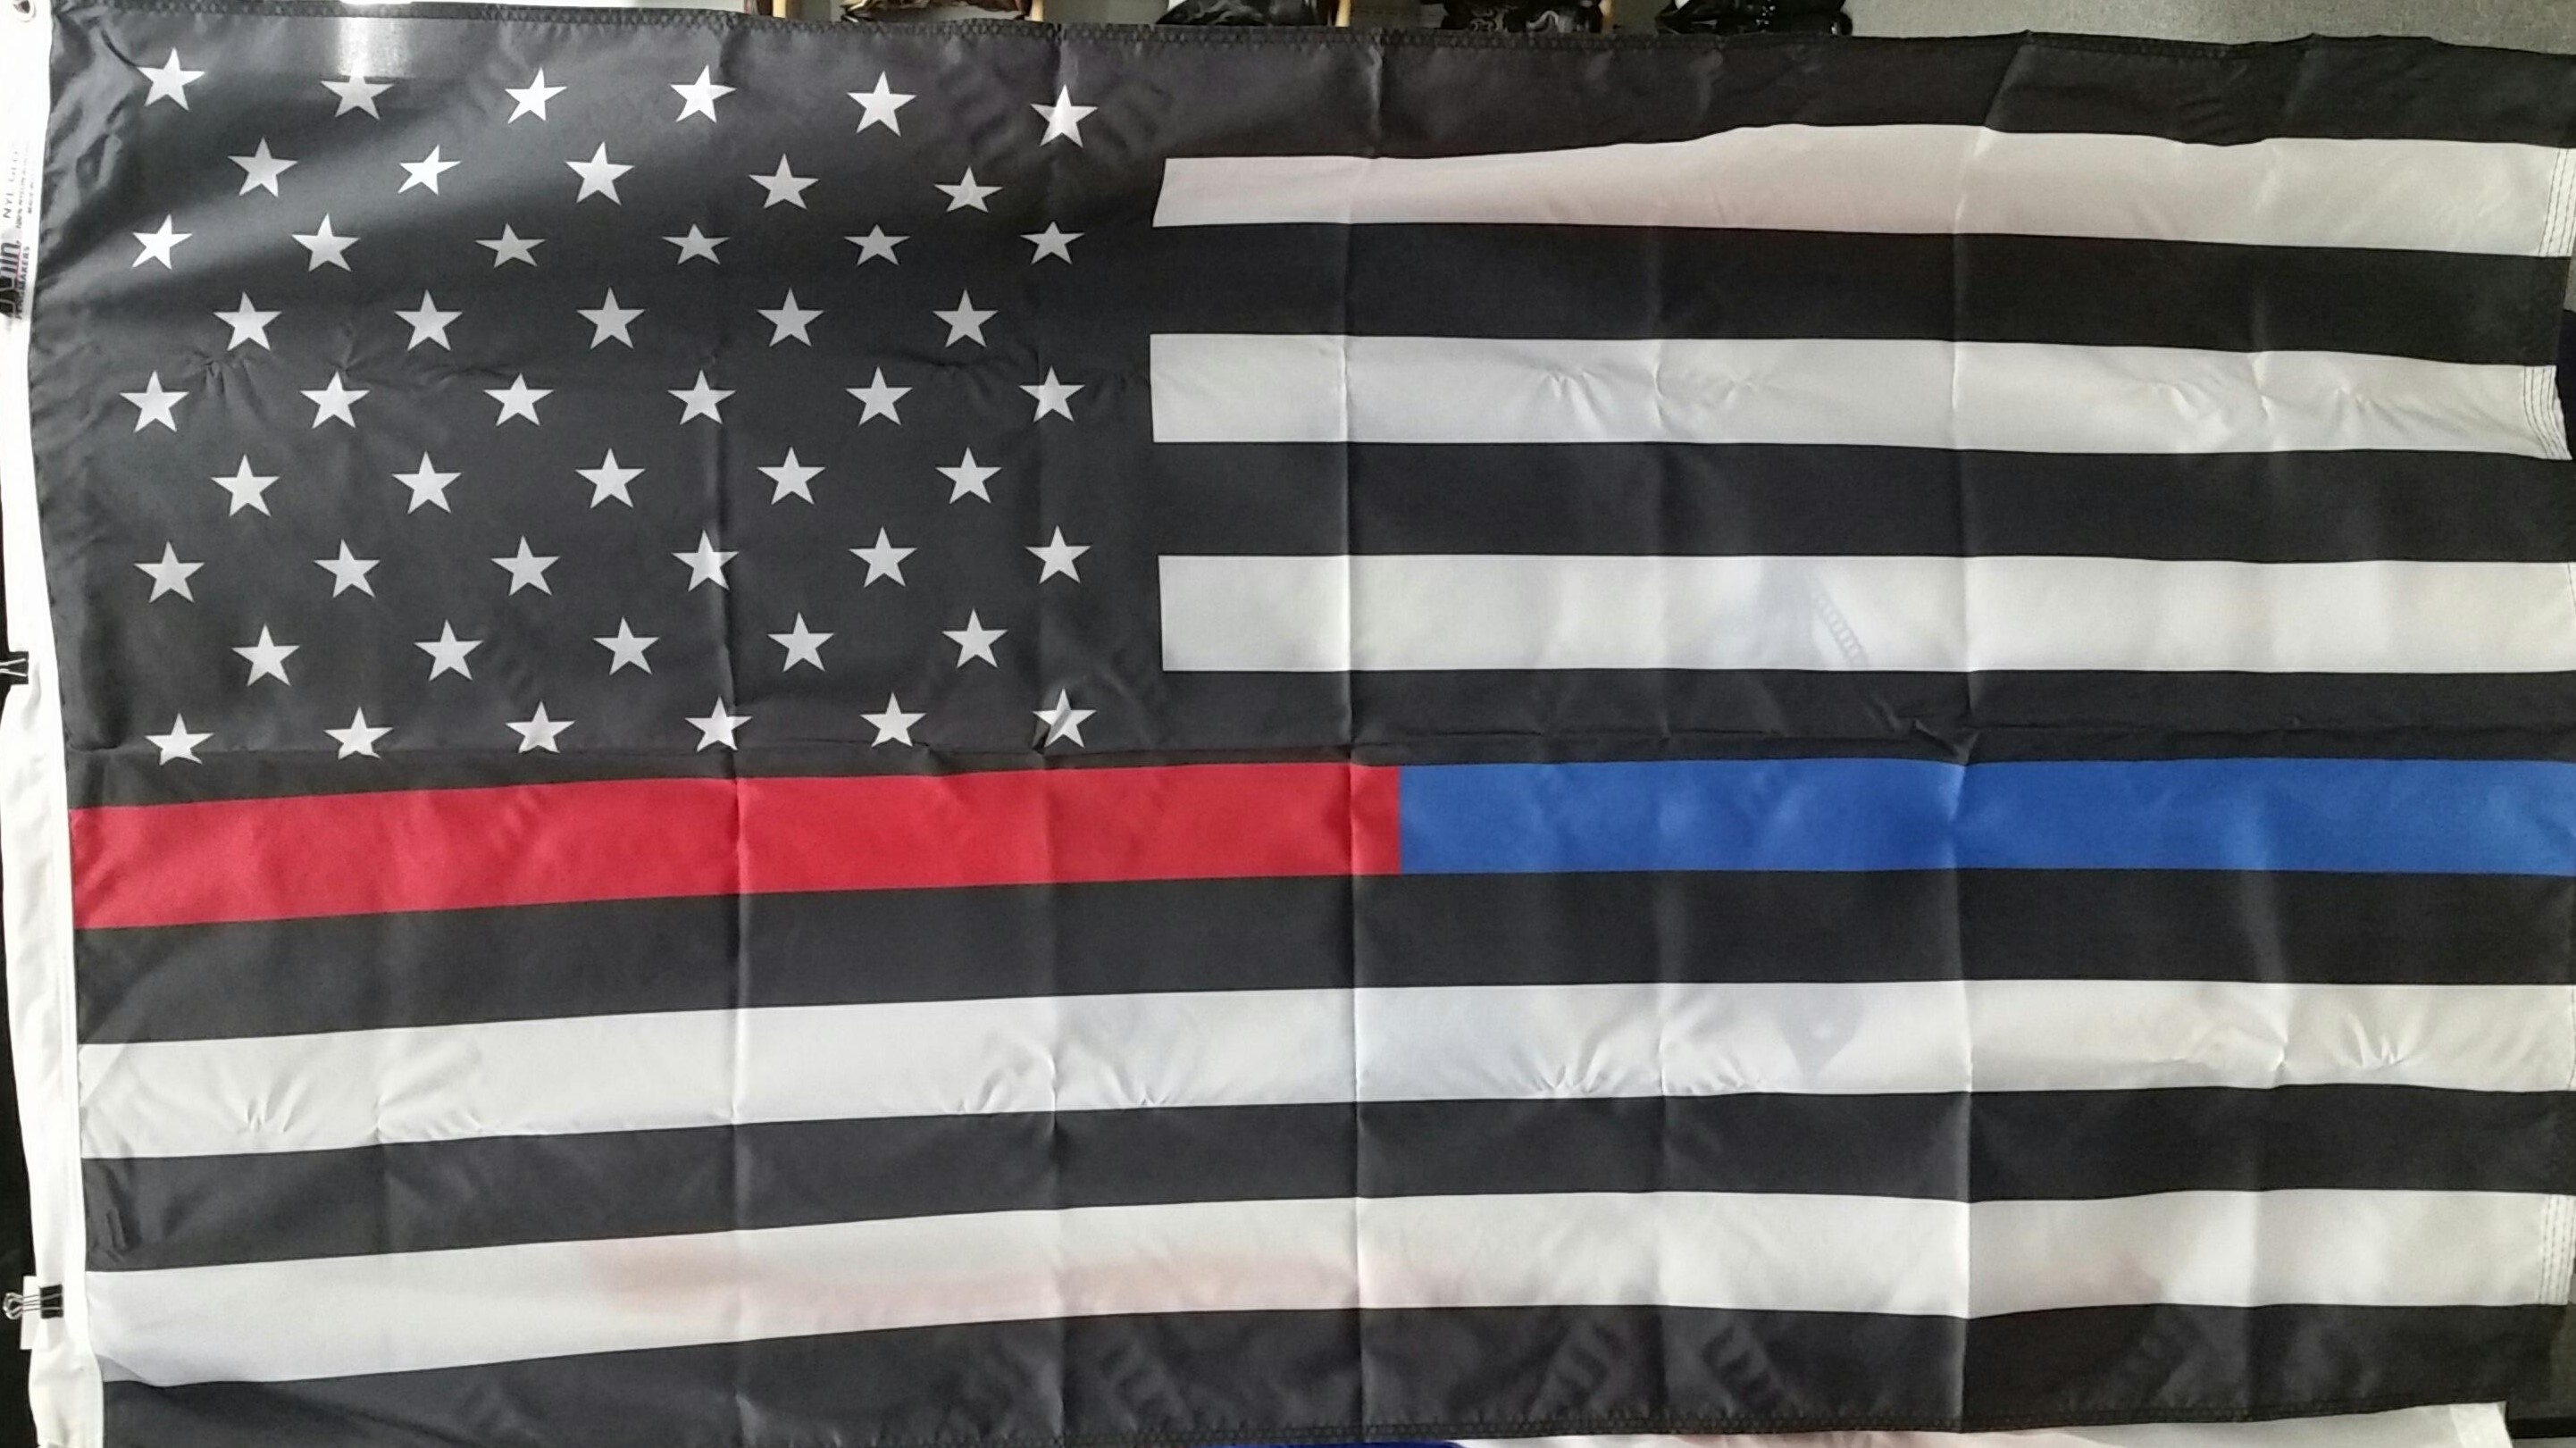 Thin Red and Blue Line American flag version